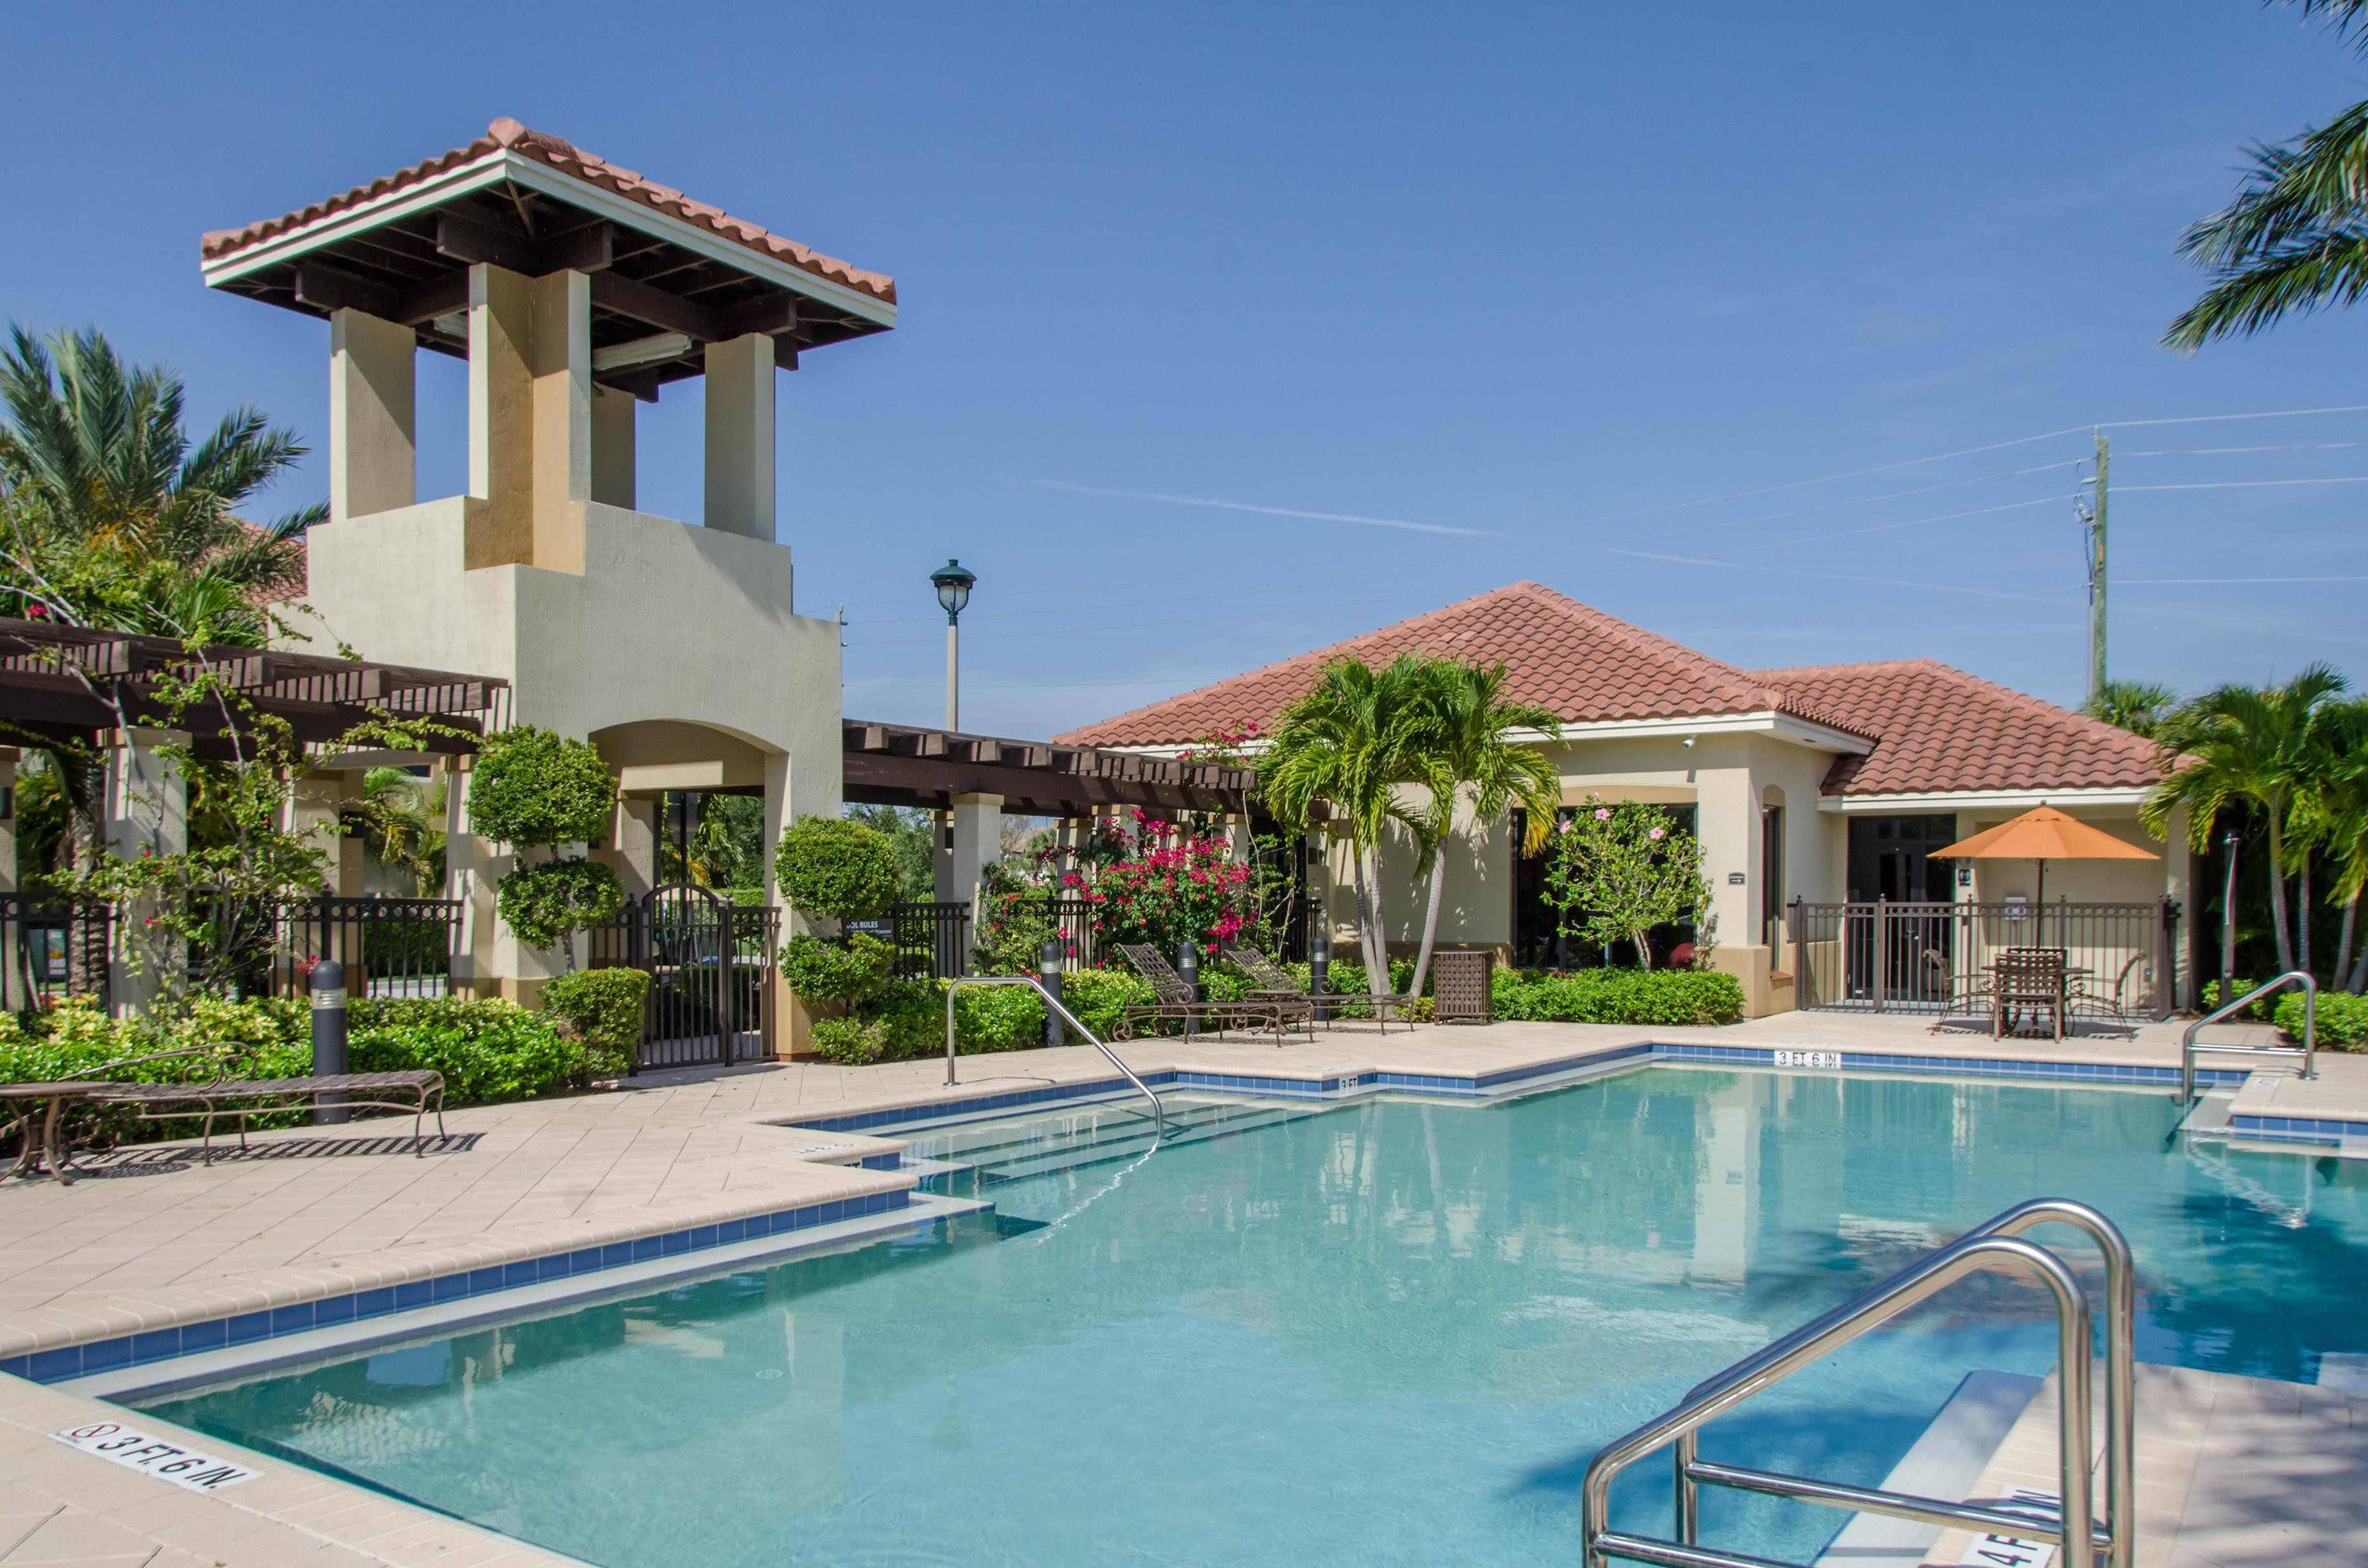 Oasis Delray Beach Apartments